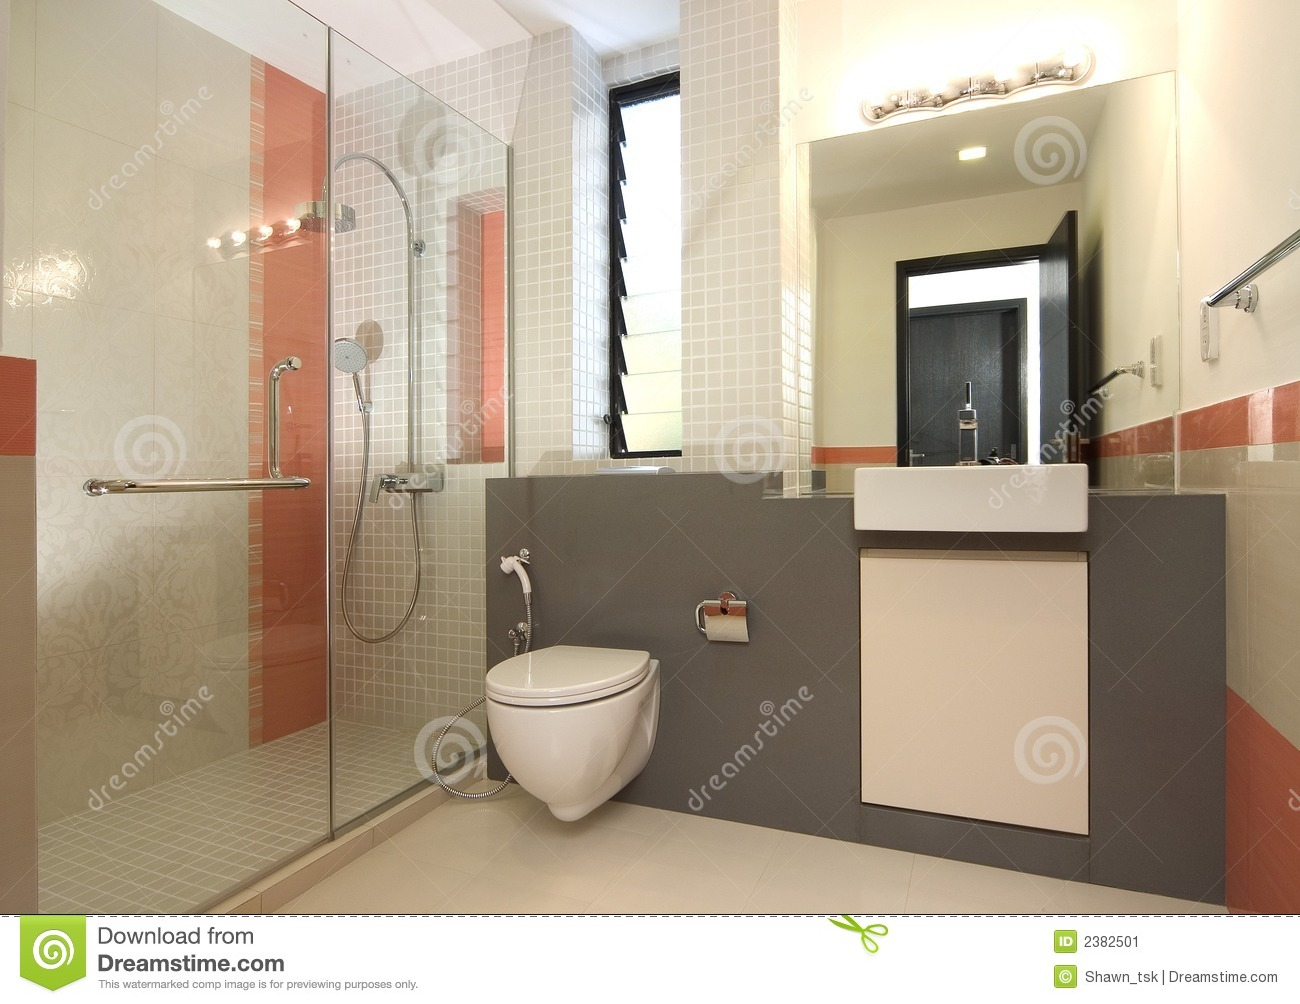 Interior design bathroom stock image image of light for Interior design small bathroom pictures